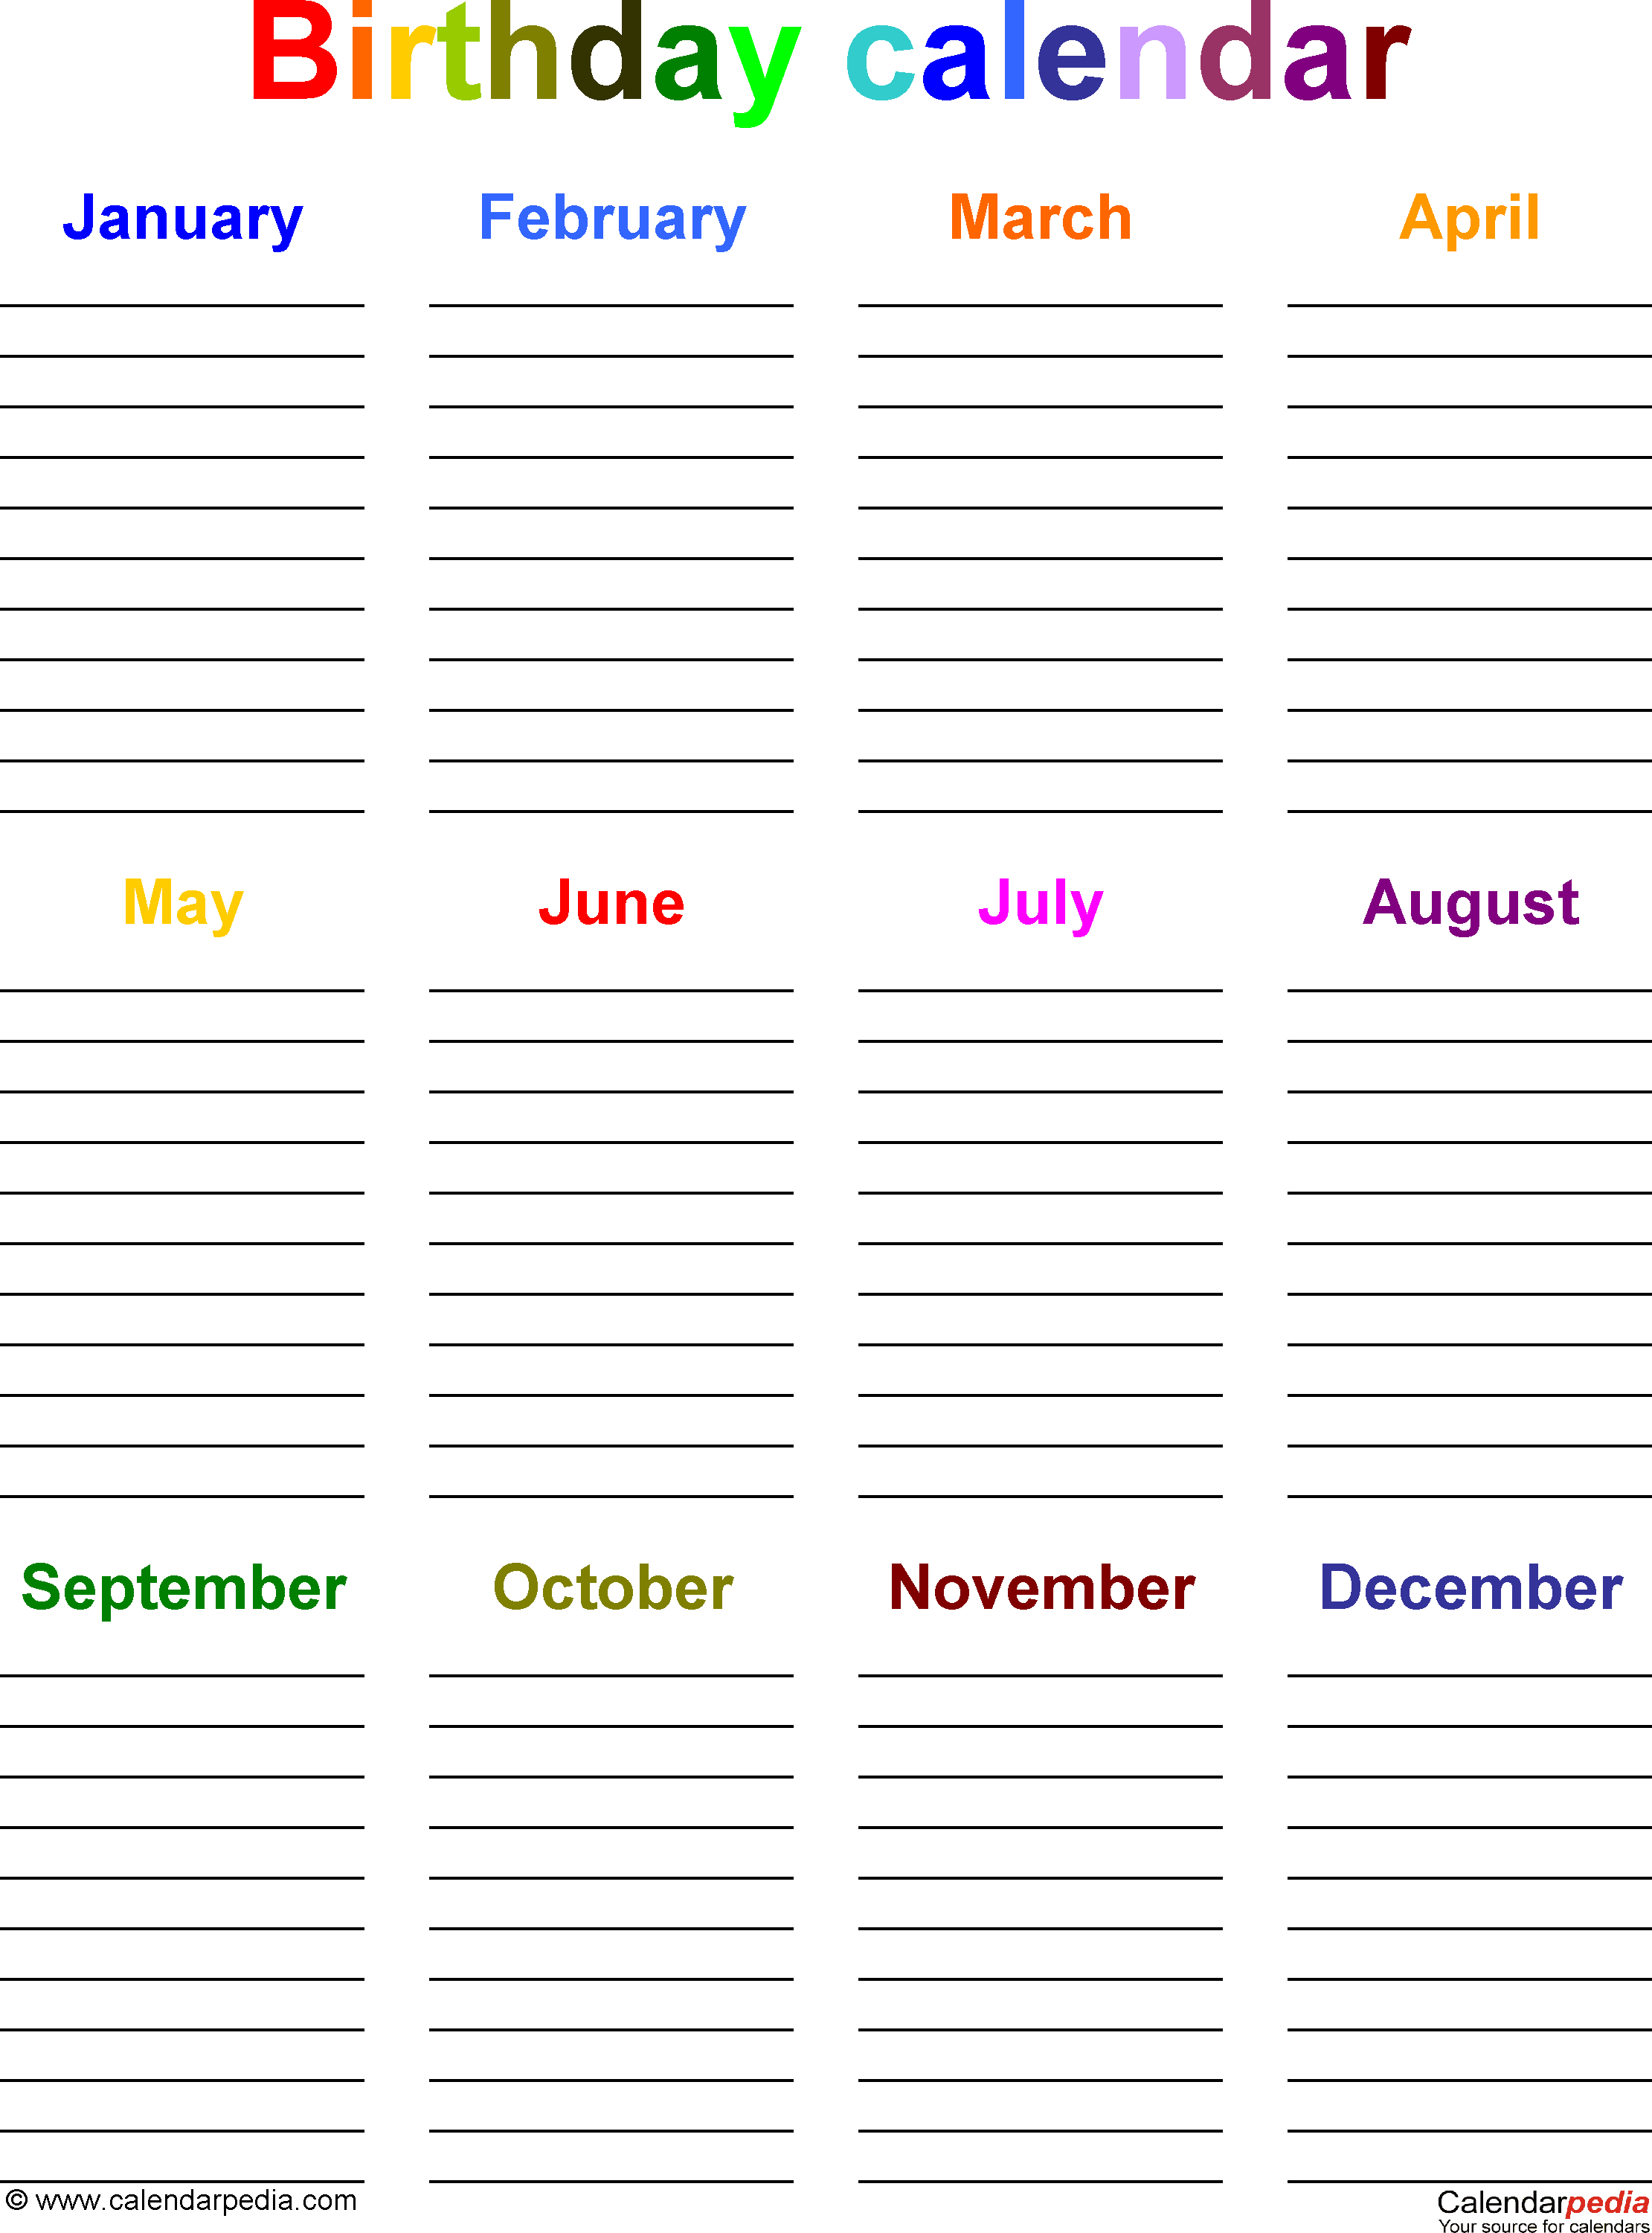 Birthday Calendars  Free Printable Microsoft Word Templates with Free Printable Birthday Chart